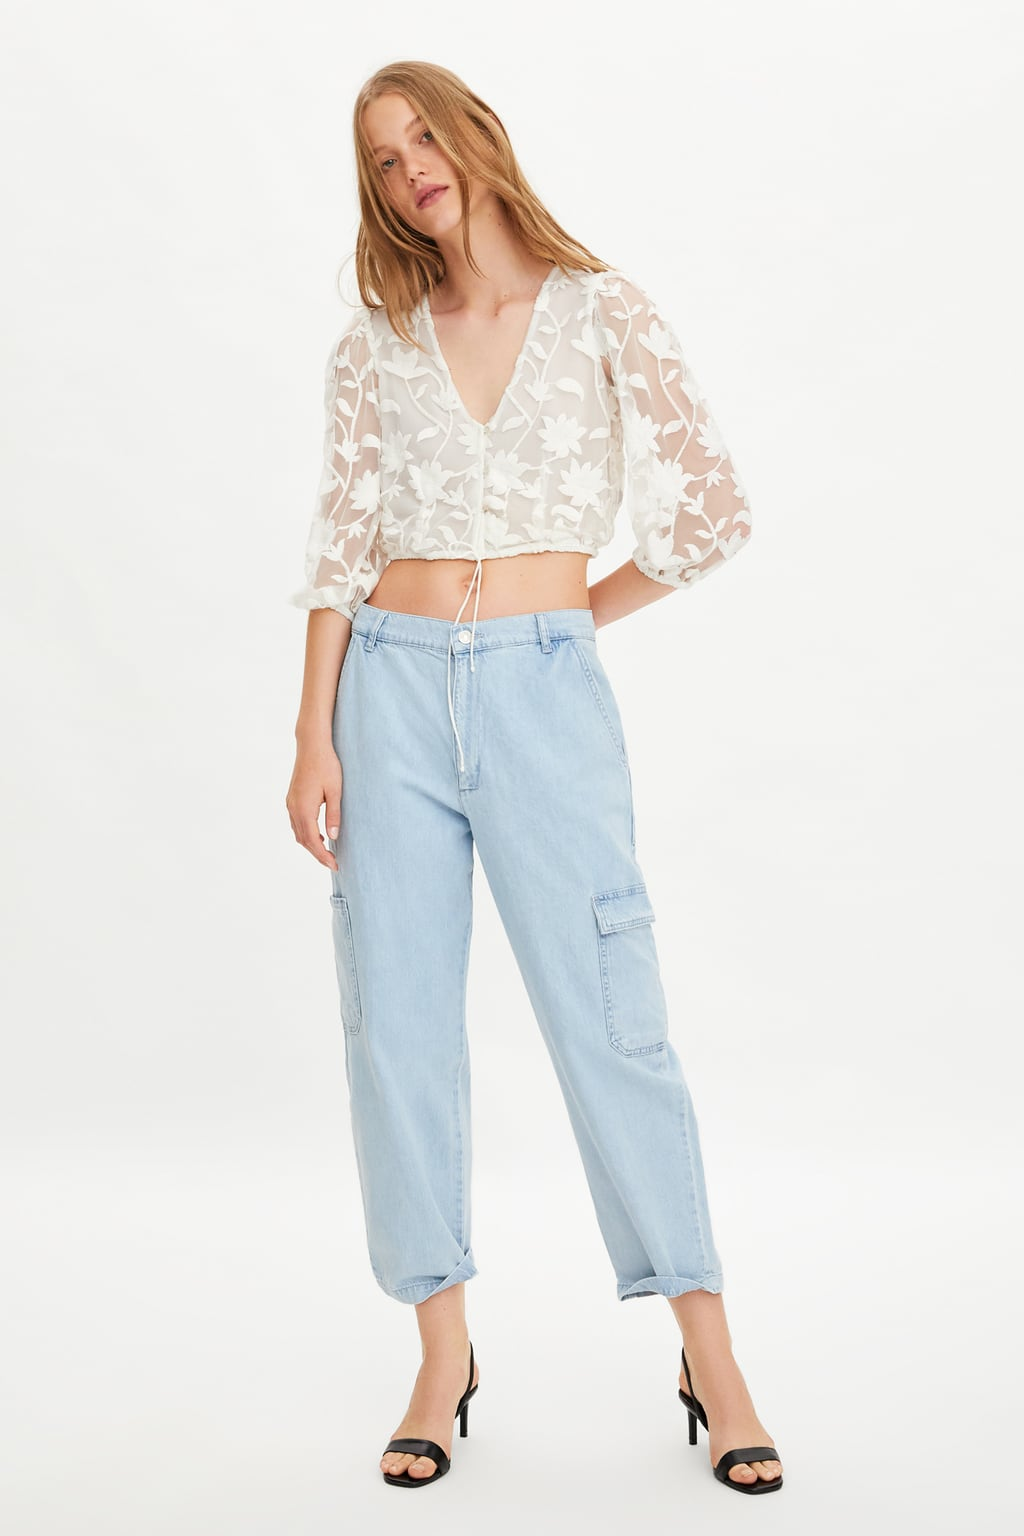 efd969ce4451 Tops | TRF | New Collection Online | ZARA United States